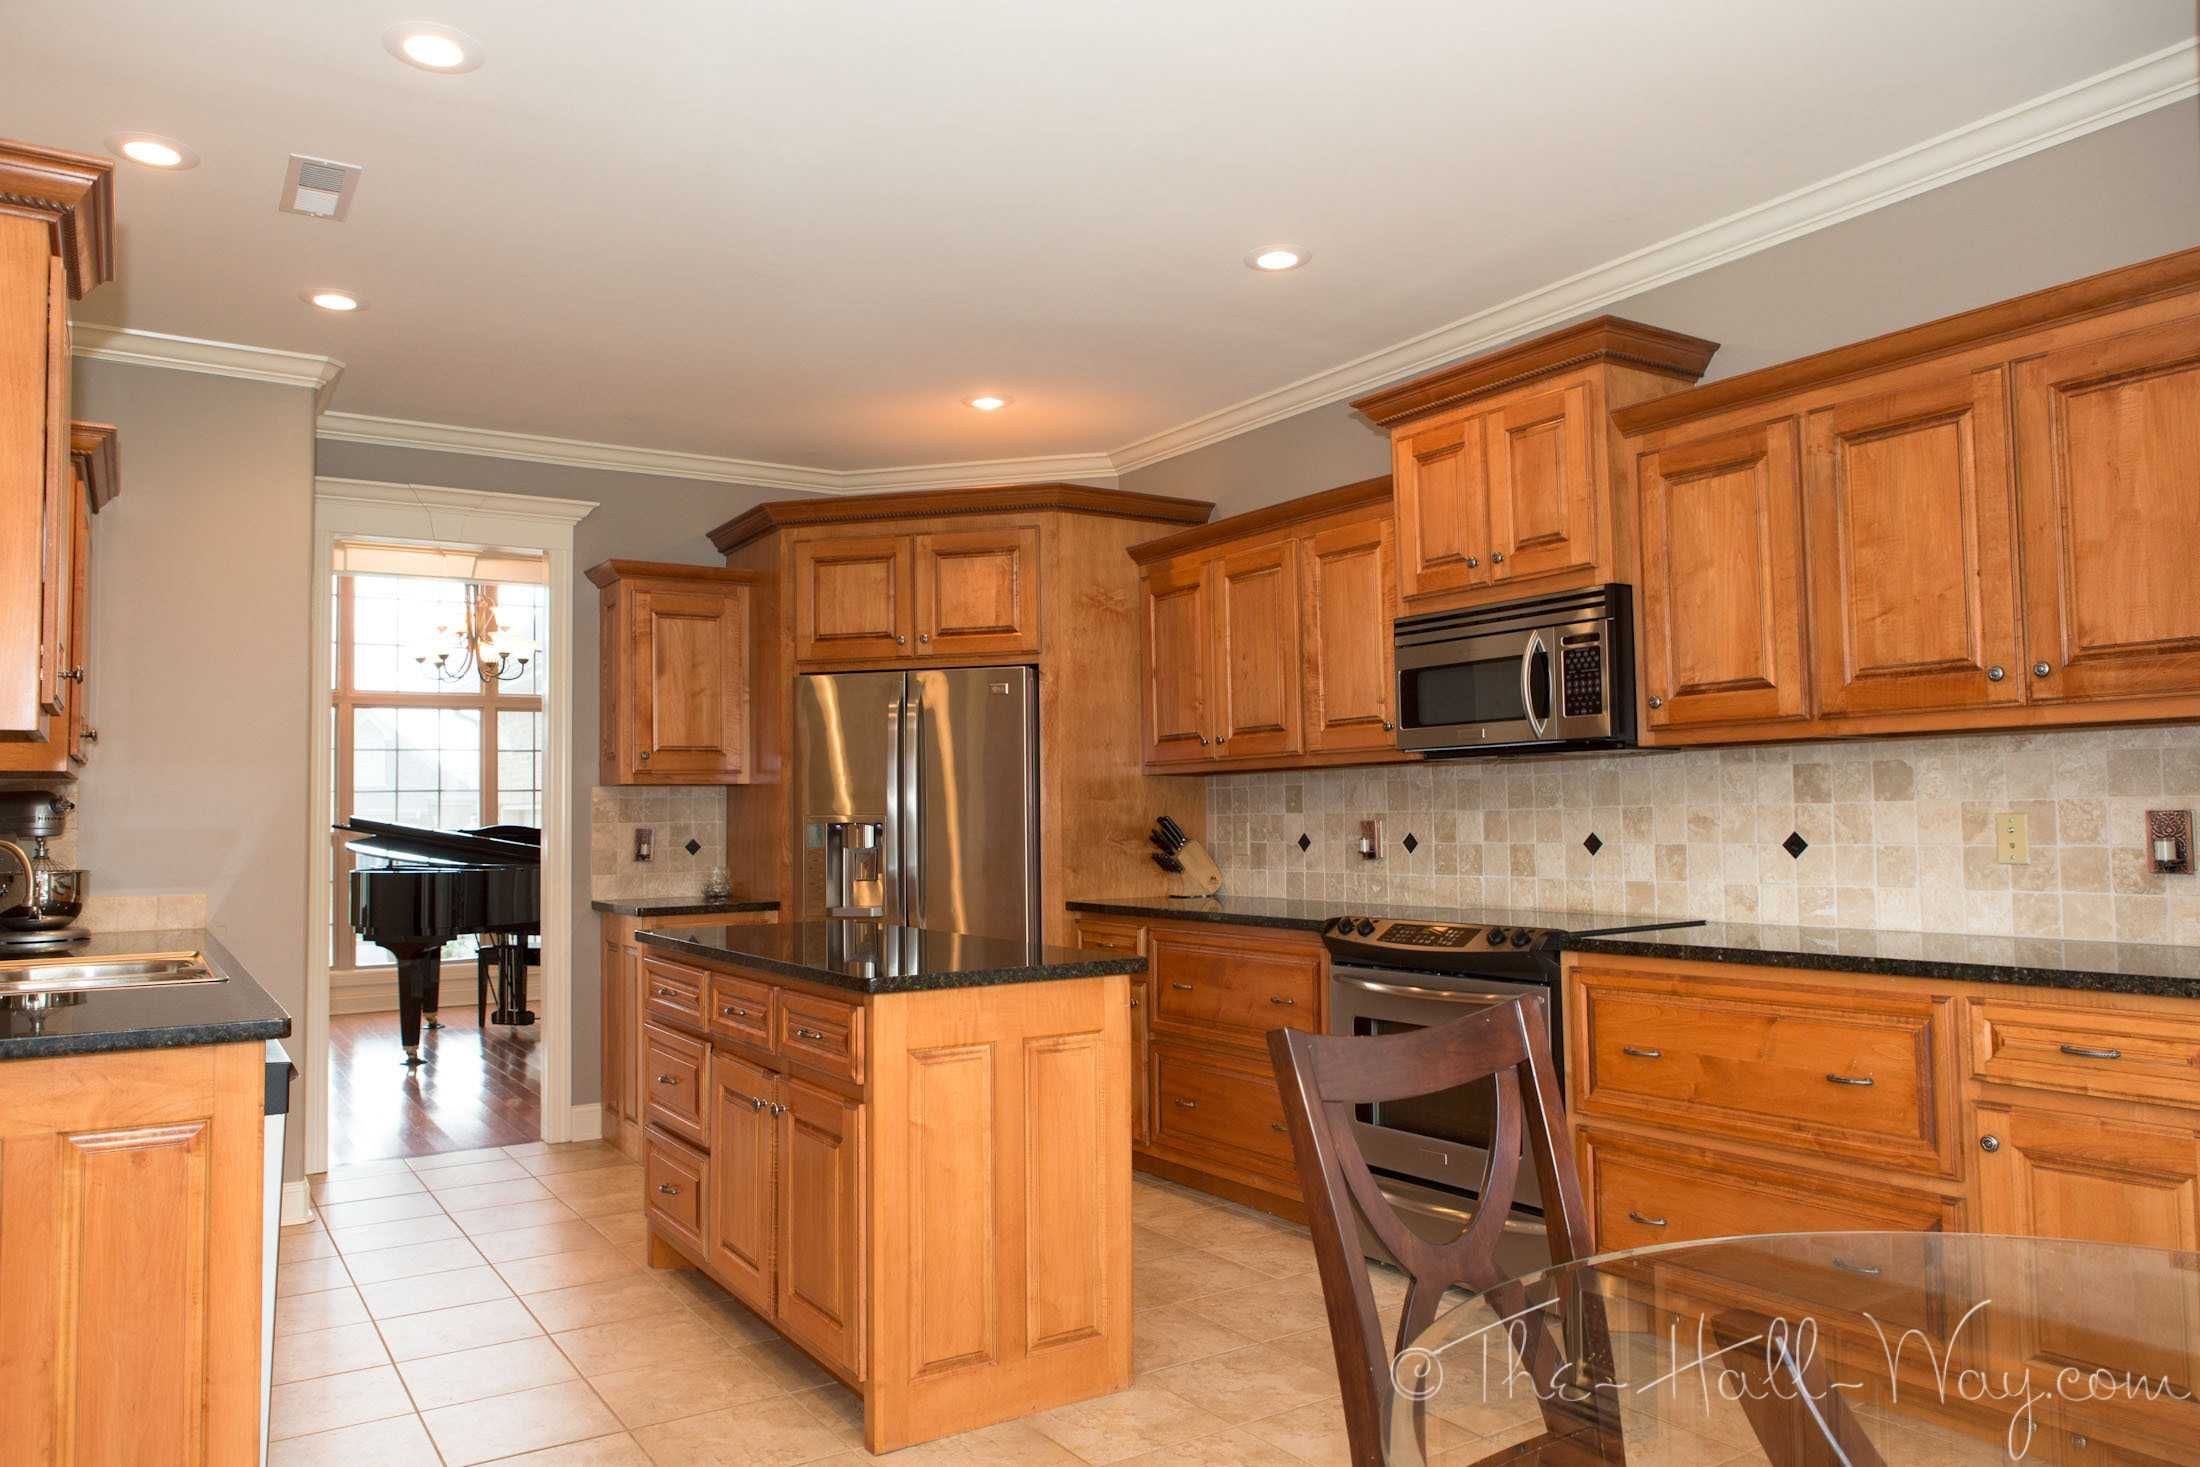 Behr Taupe Walls Maple Cabinets Ideas With Kitchen Kitchen Renovation Maple Kitchen Cabinets Taupe Kitchen